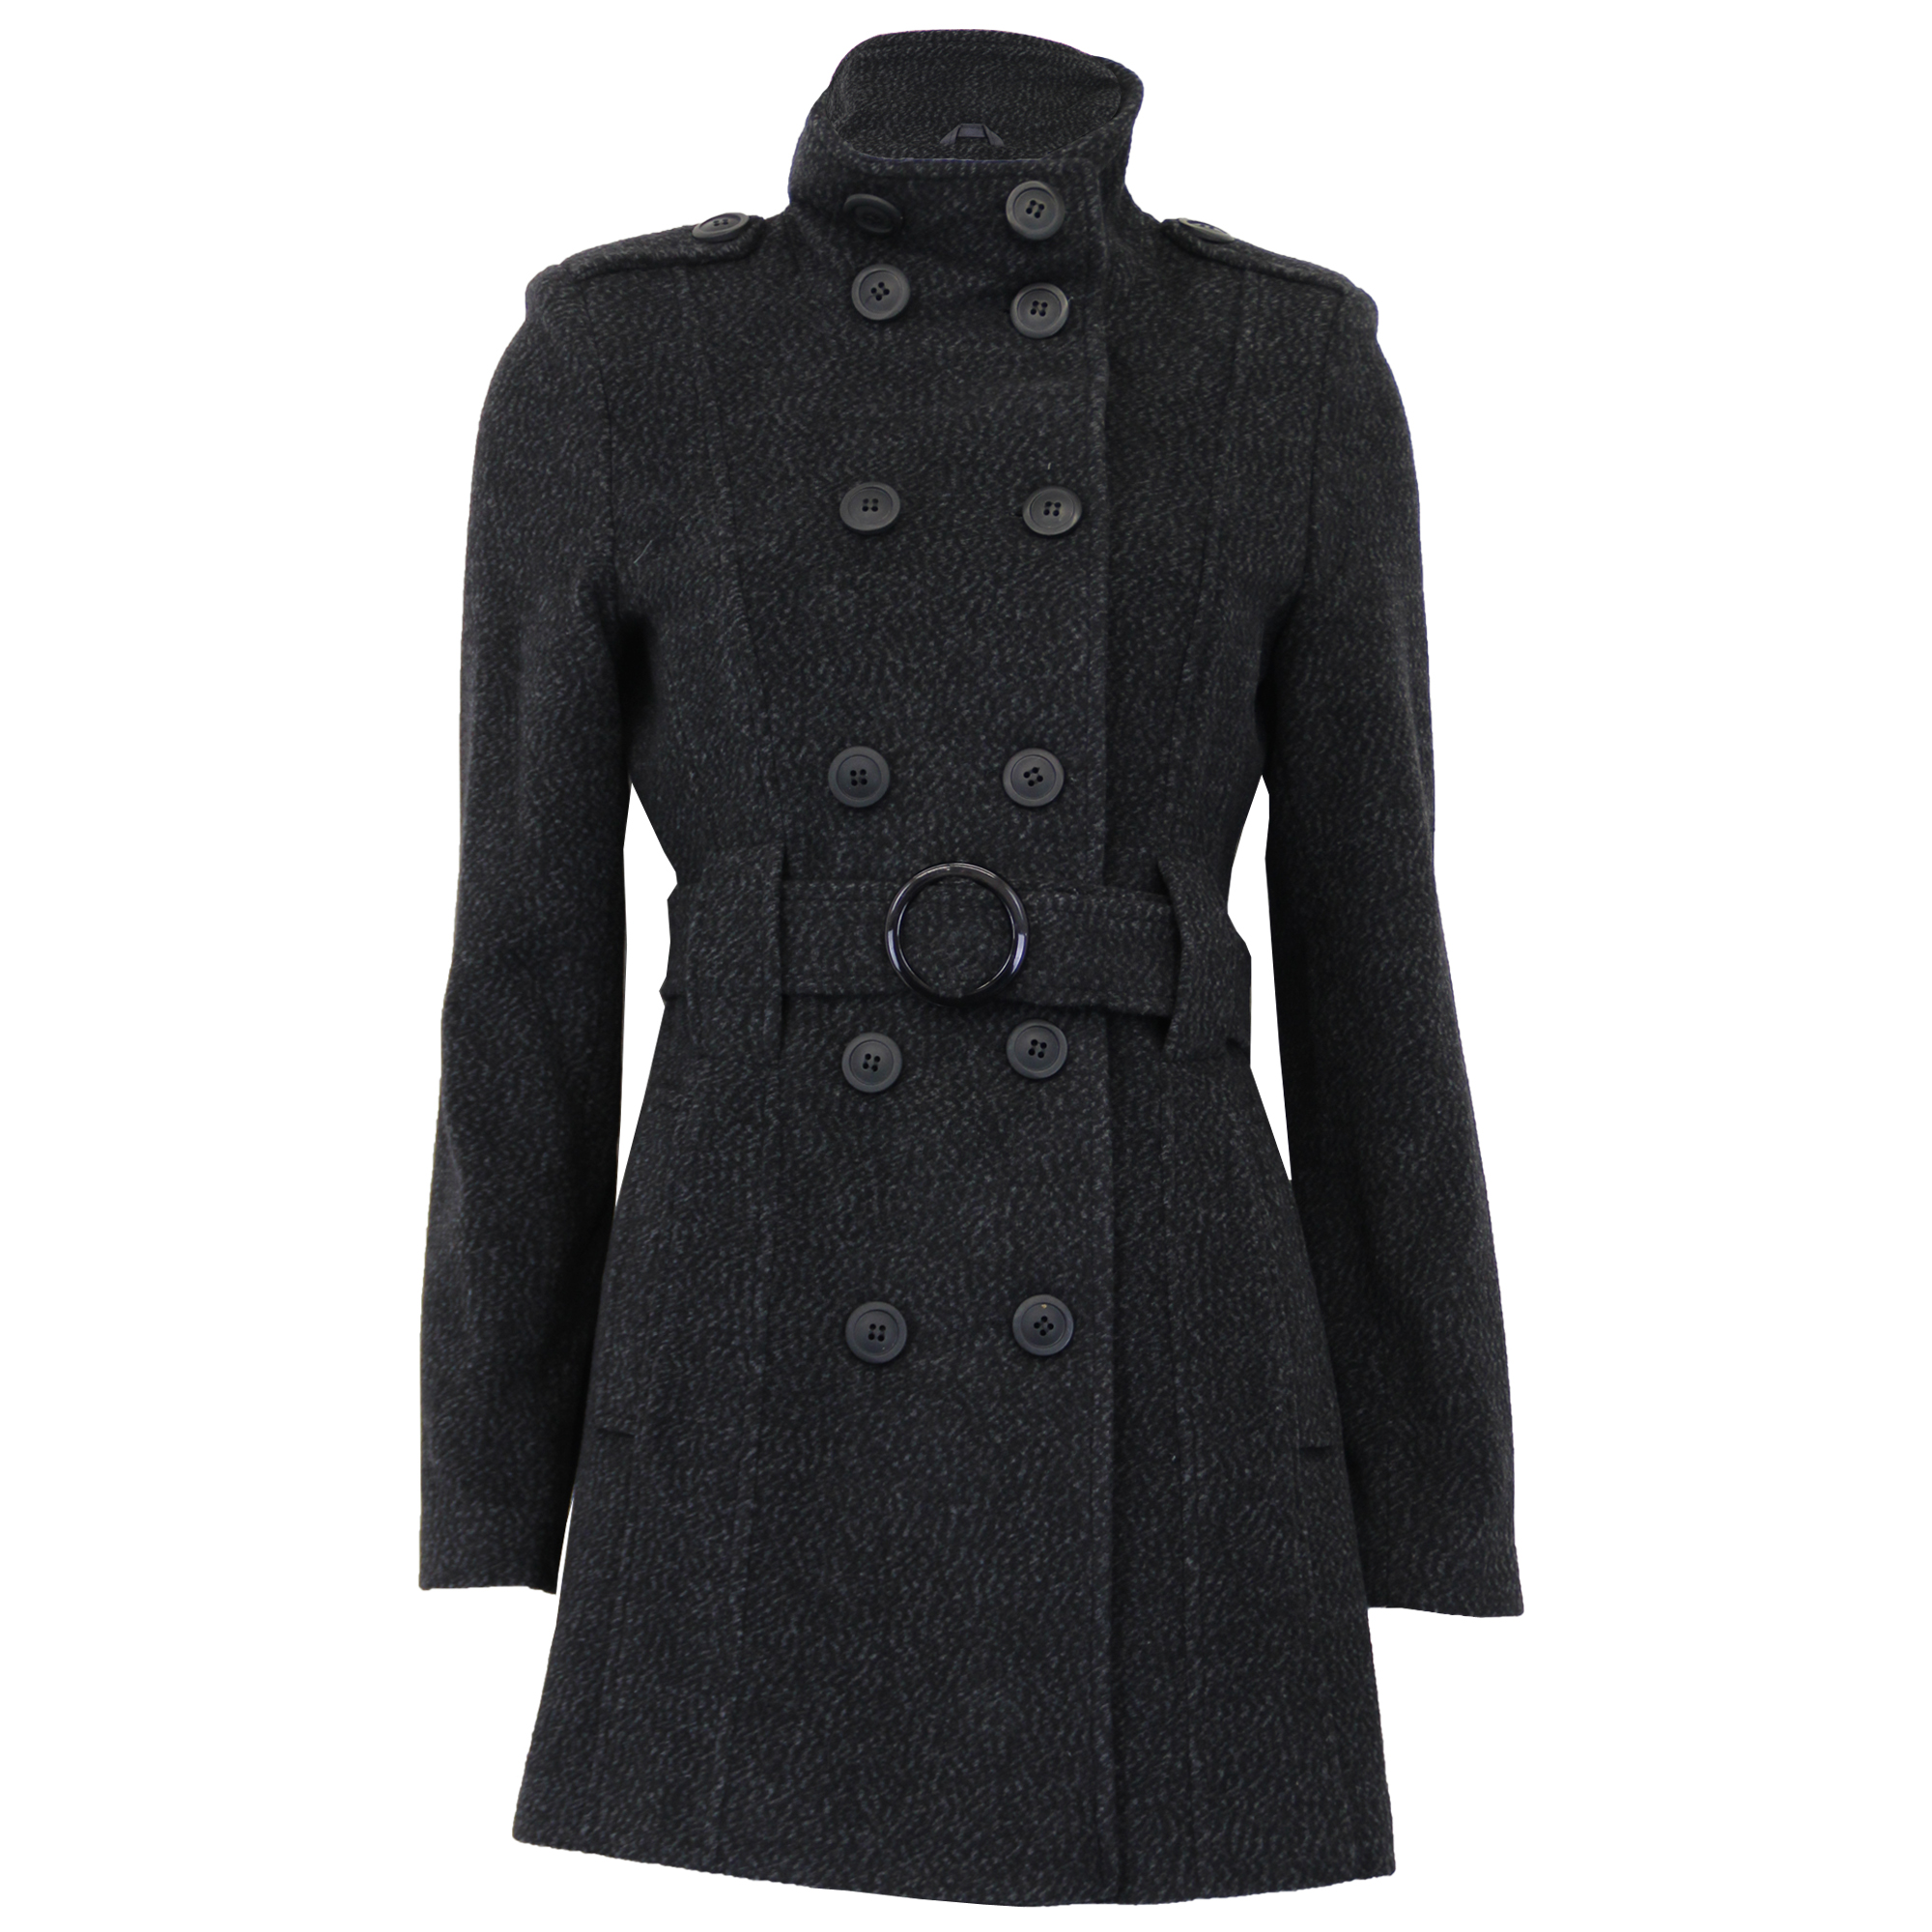 cheaper sale 2019 professional men/man Details about Ladies Wool Coat Womens Jacket Double Breasted Belt Epaulette  Military Winter